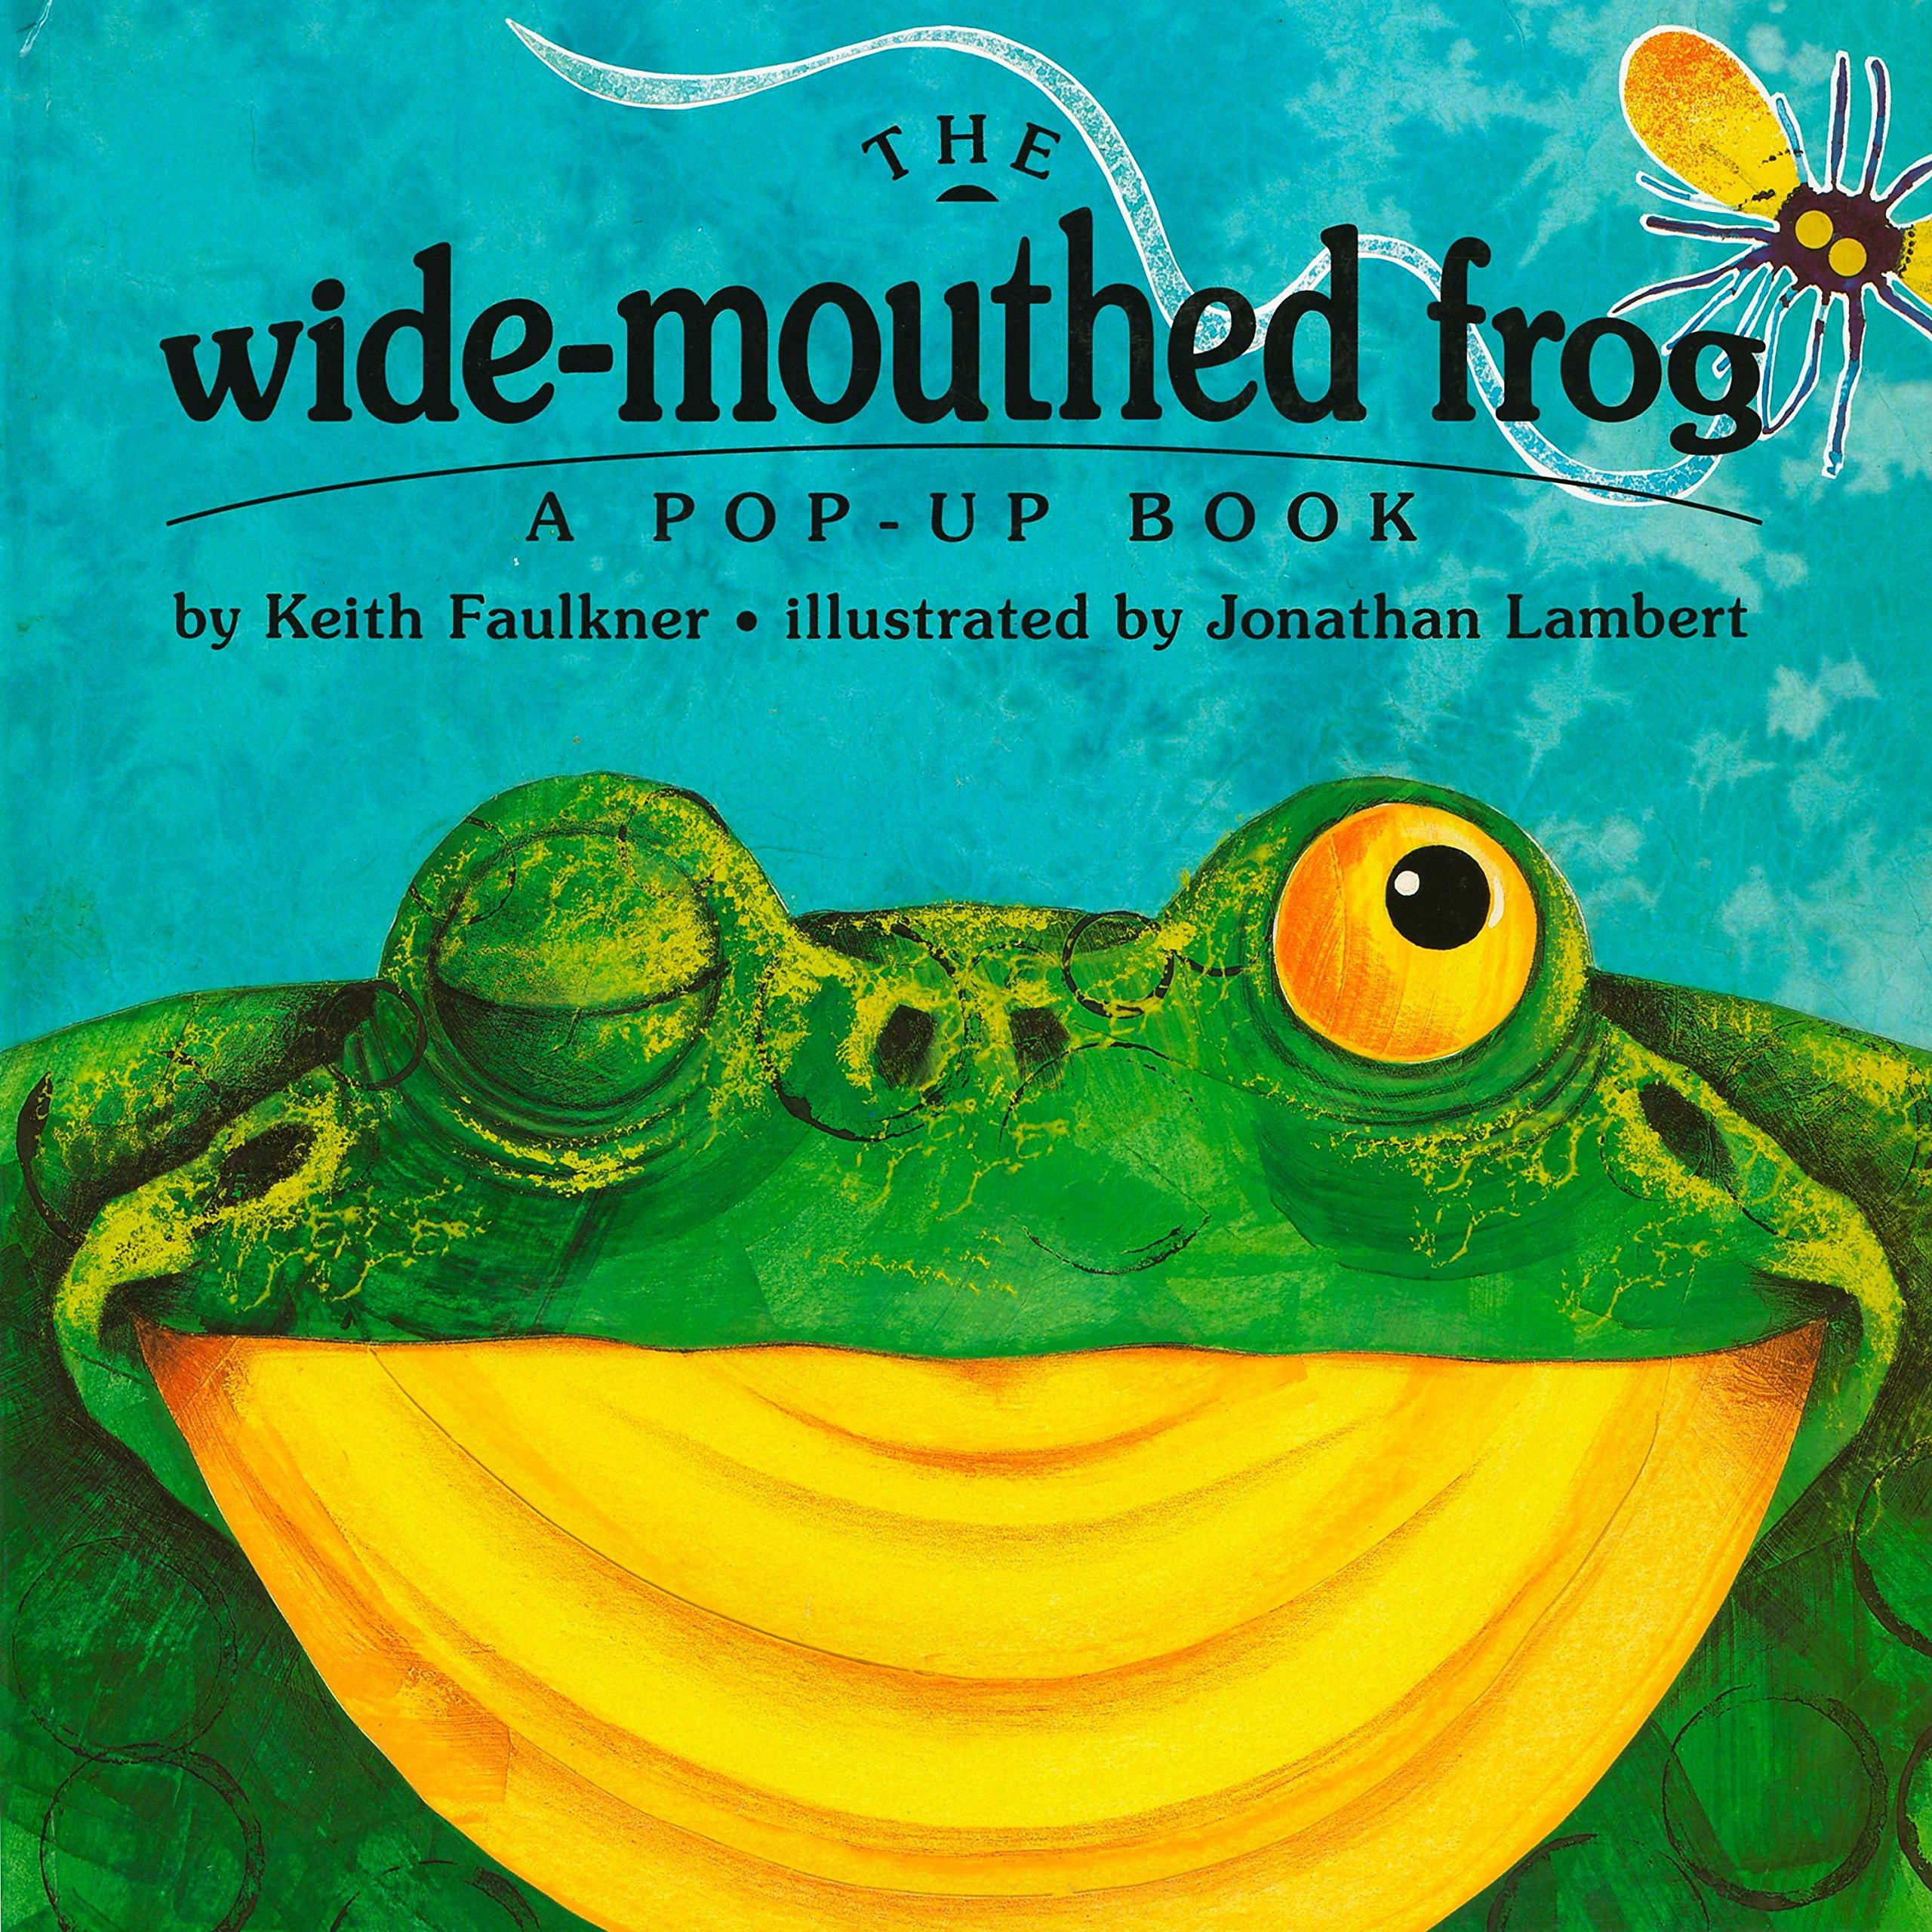 The Wide-Mouthed Frog (A Pop-Up Book): Faulkner, Keith, Lambert, Jonathan:  9780803718753: Amazon.com: Books